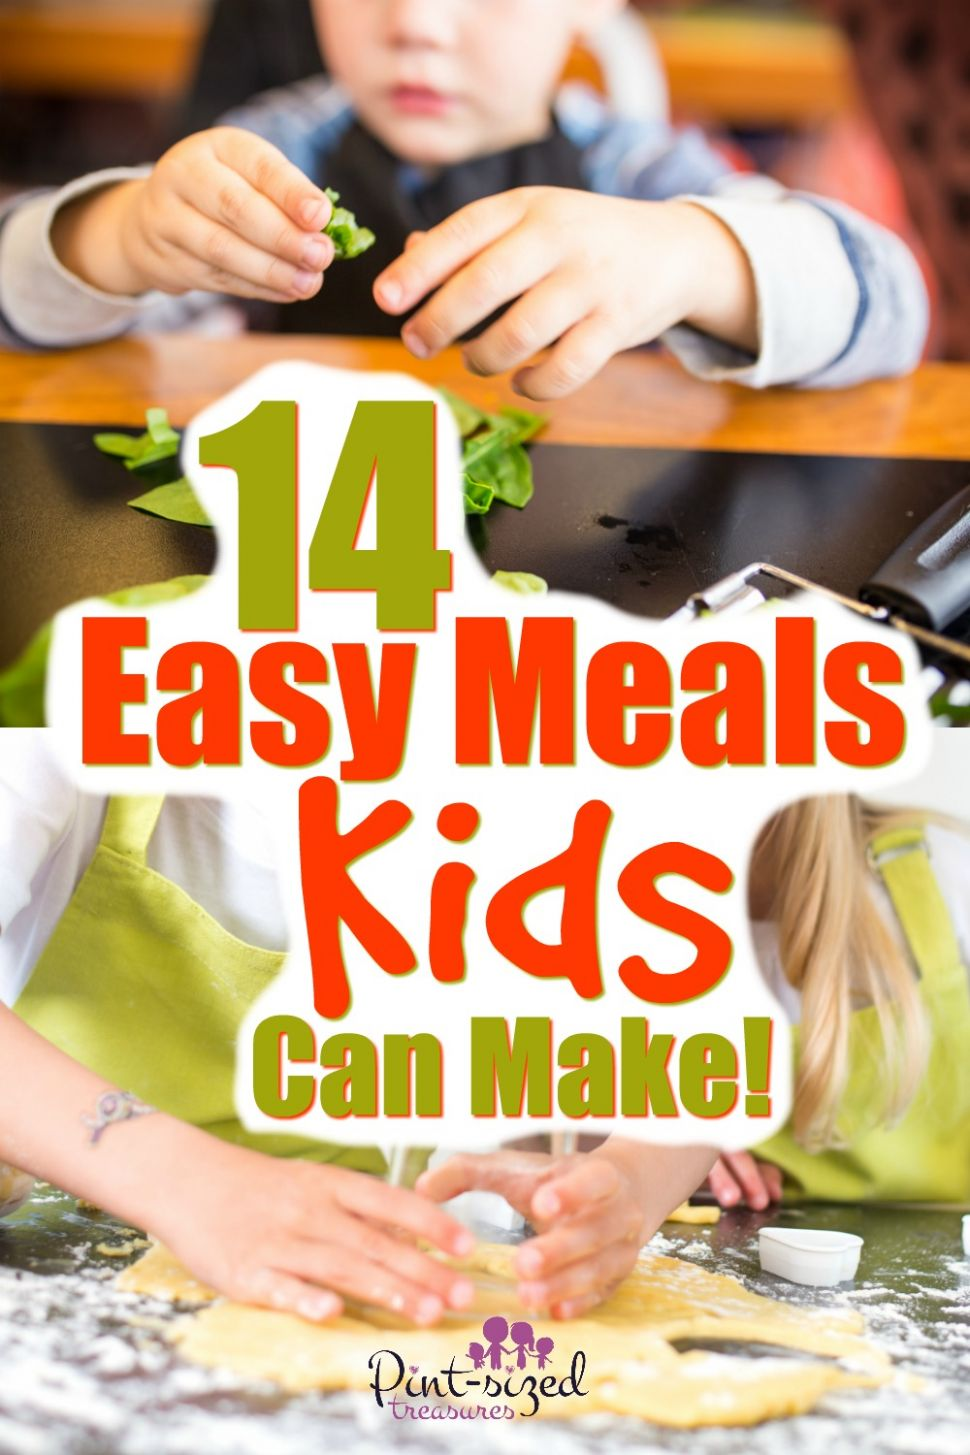 10 Easy Meals Kids Can Make - Easy Recipes You Can Make At Home